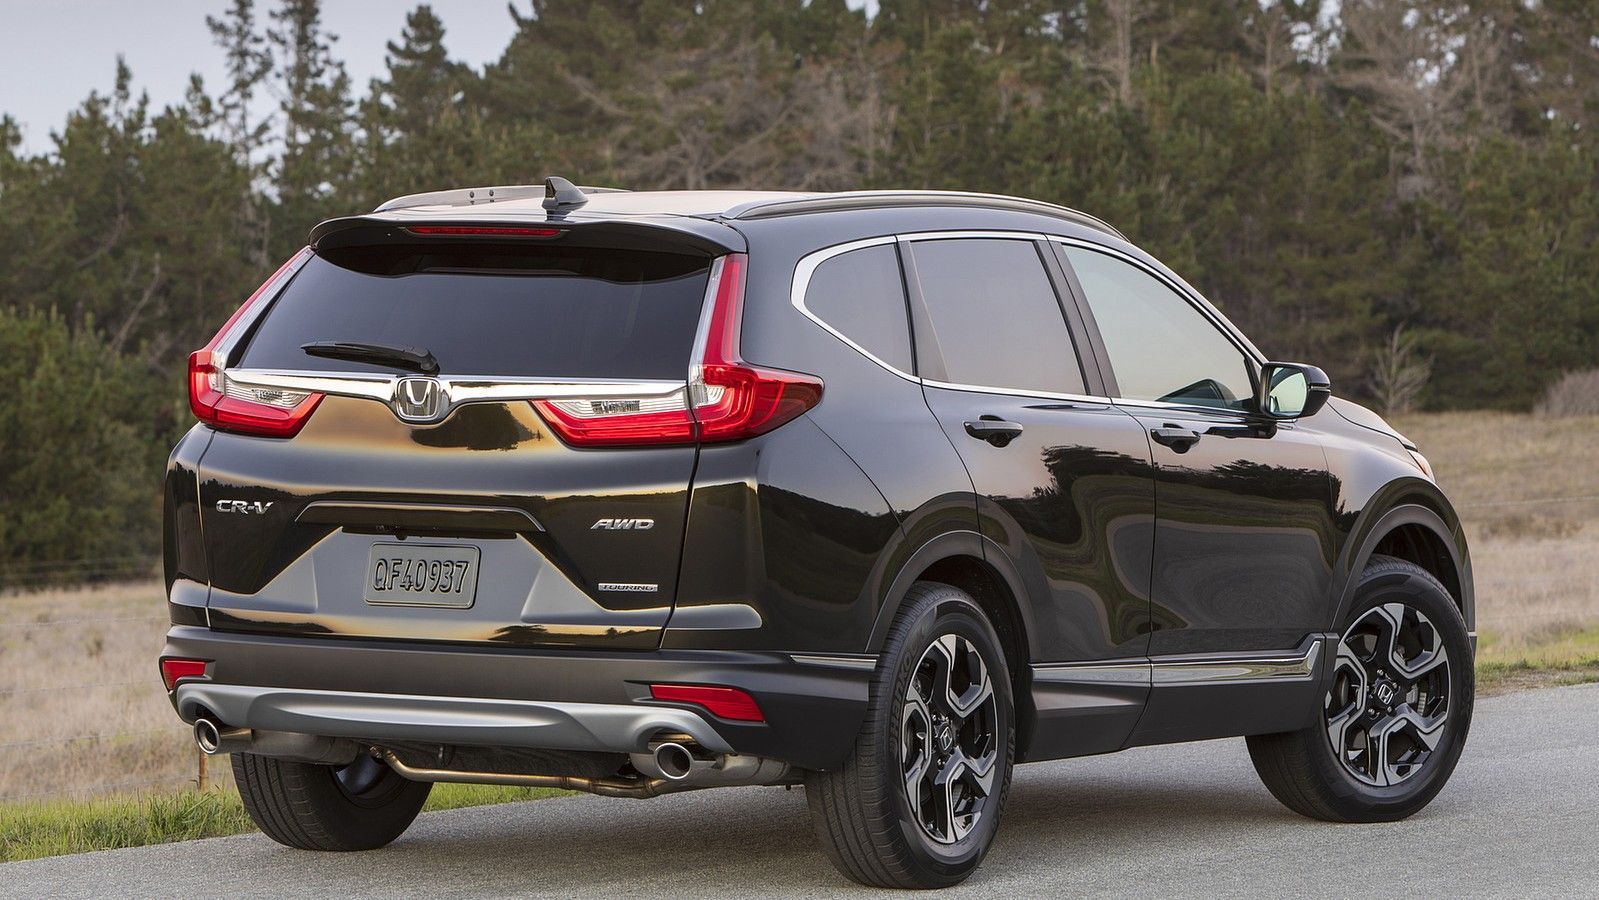 2019 honda crv rear three quarters